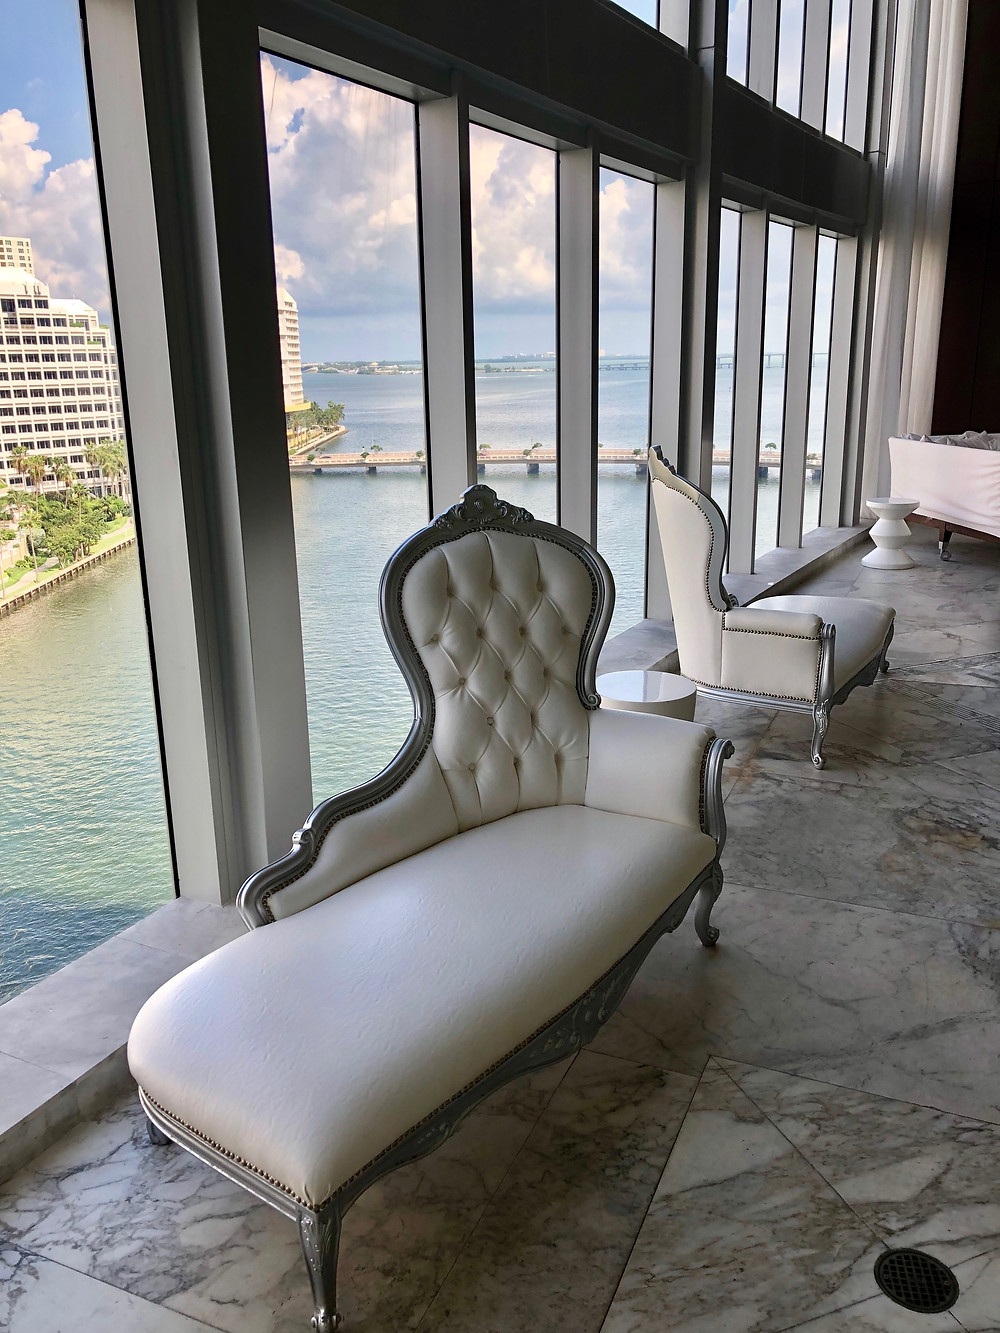 miami, miami spa month, iconbrickell spa, self care, self love, spa review, beauty treatments, tranquil, serene, biscayne bay